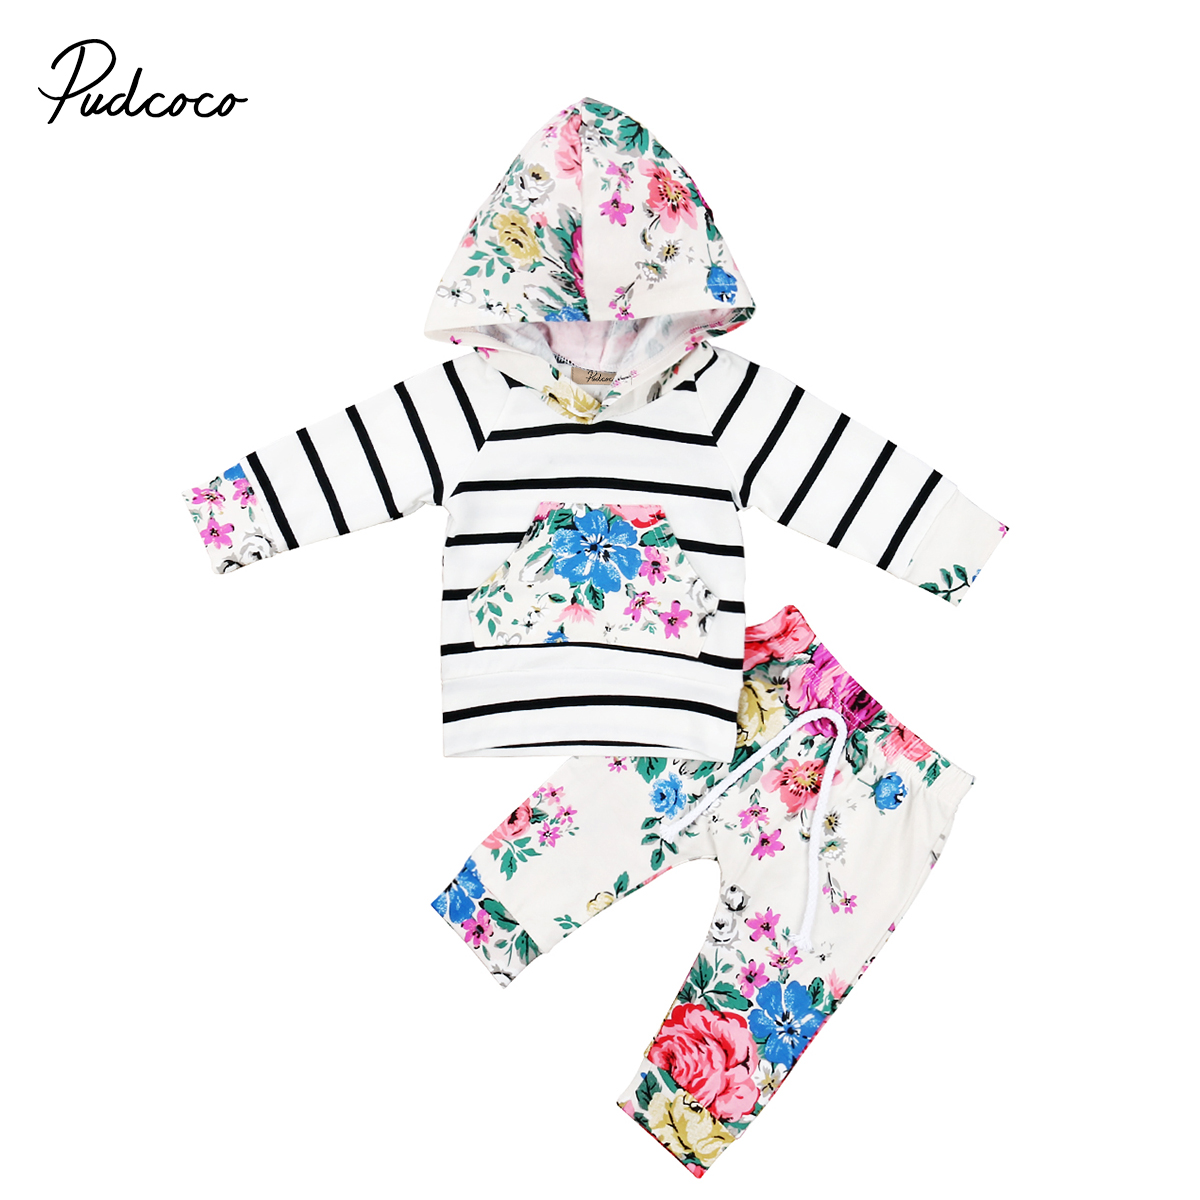 2pcs Newborn Infant Baby Girls Clothes Hooded Long Sleeve Autumn T-shirt Tops+Pants Outfits Set